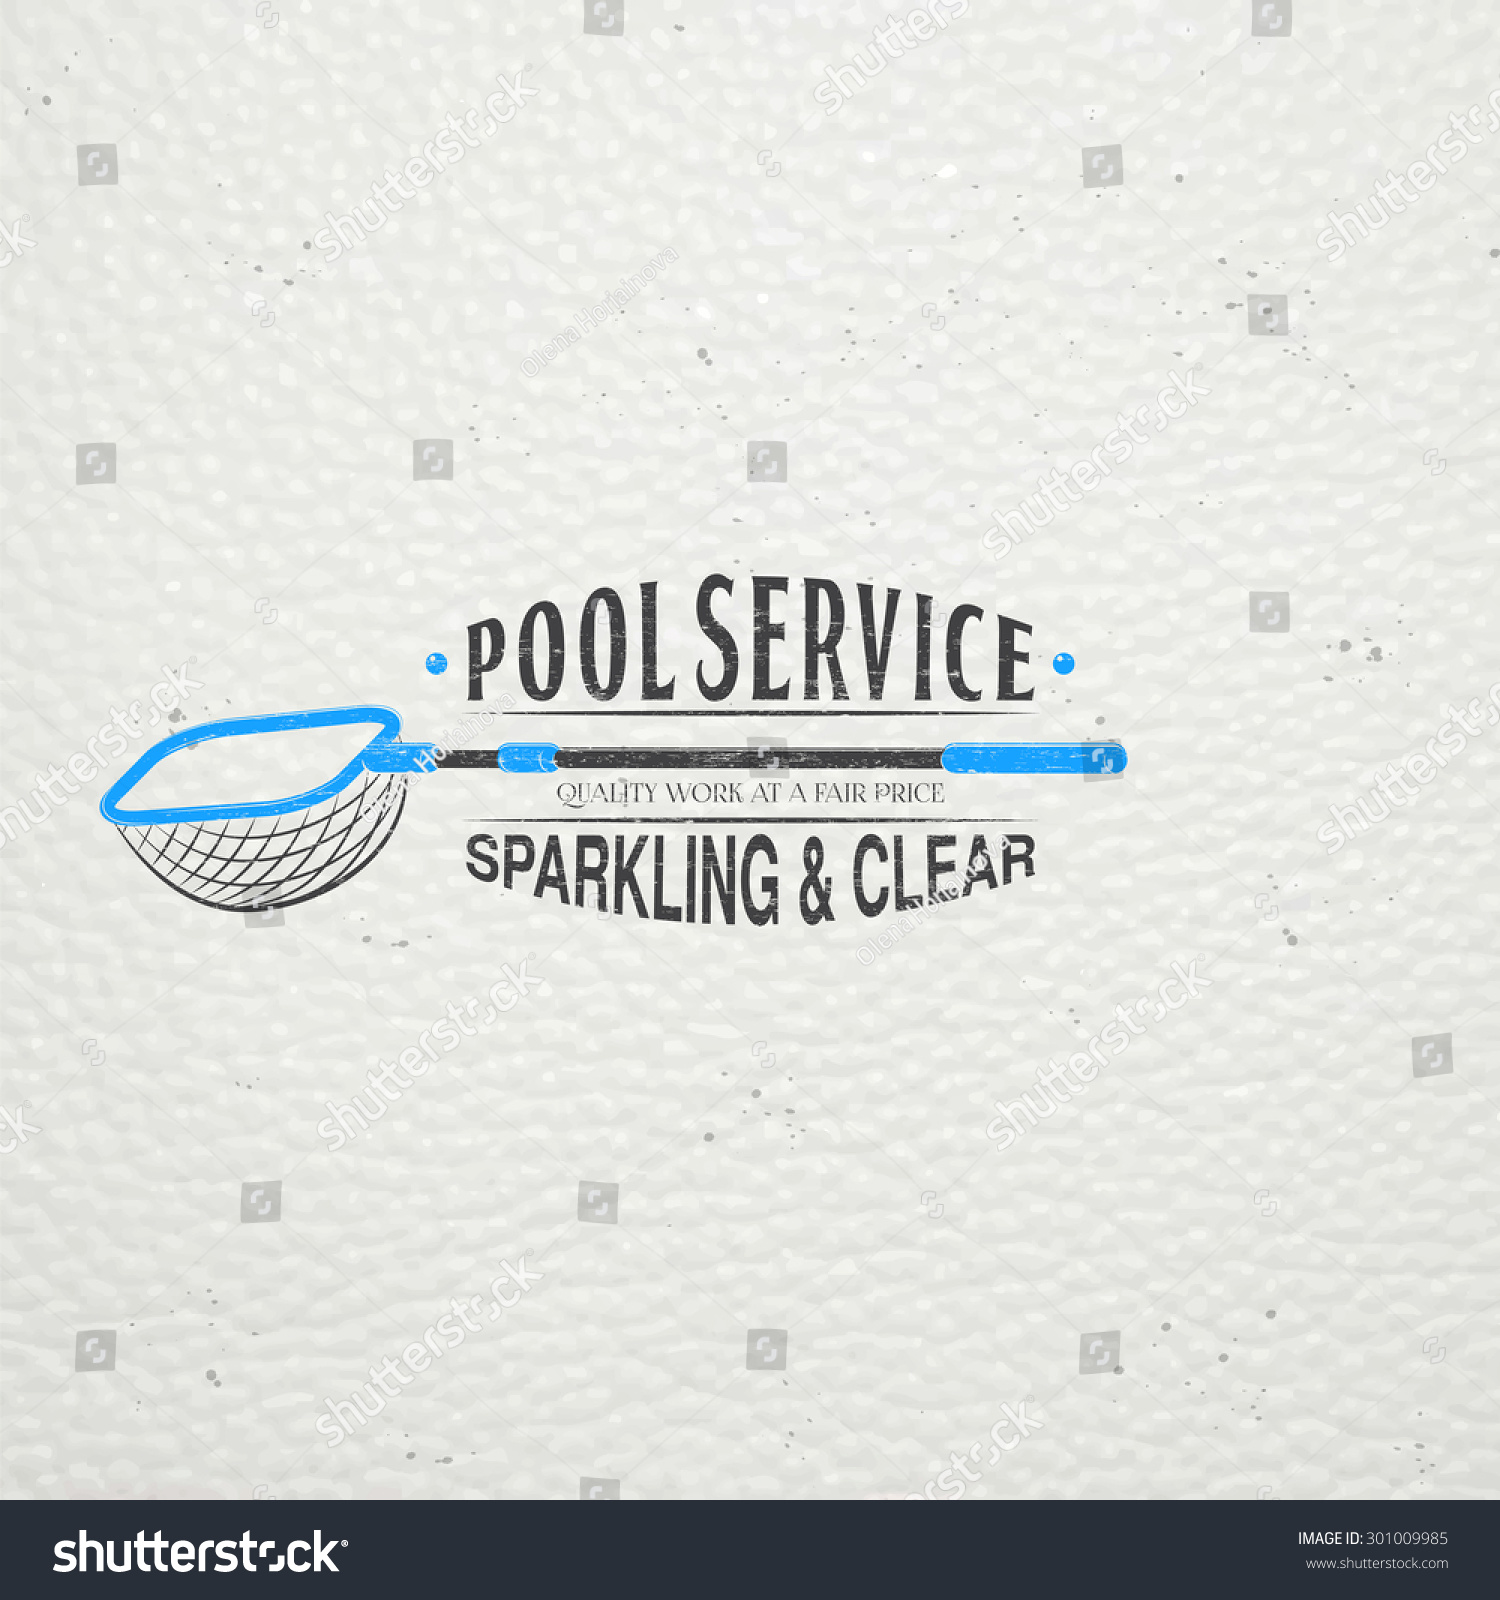 Pool Service And Maintenance : Pool service maintenance cleaning repair adjustment stock